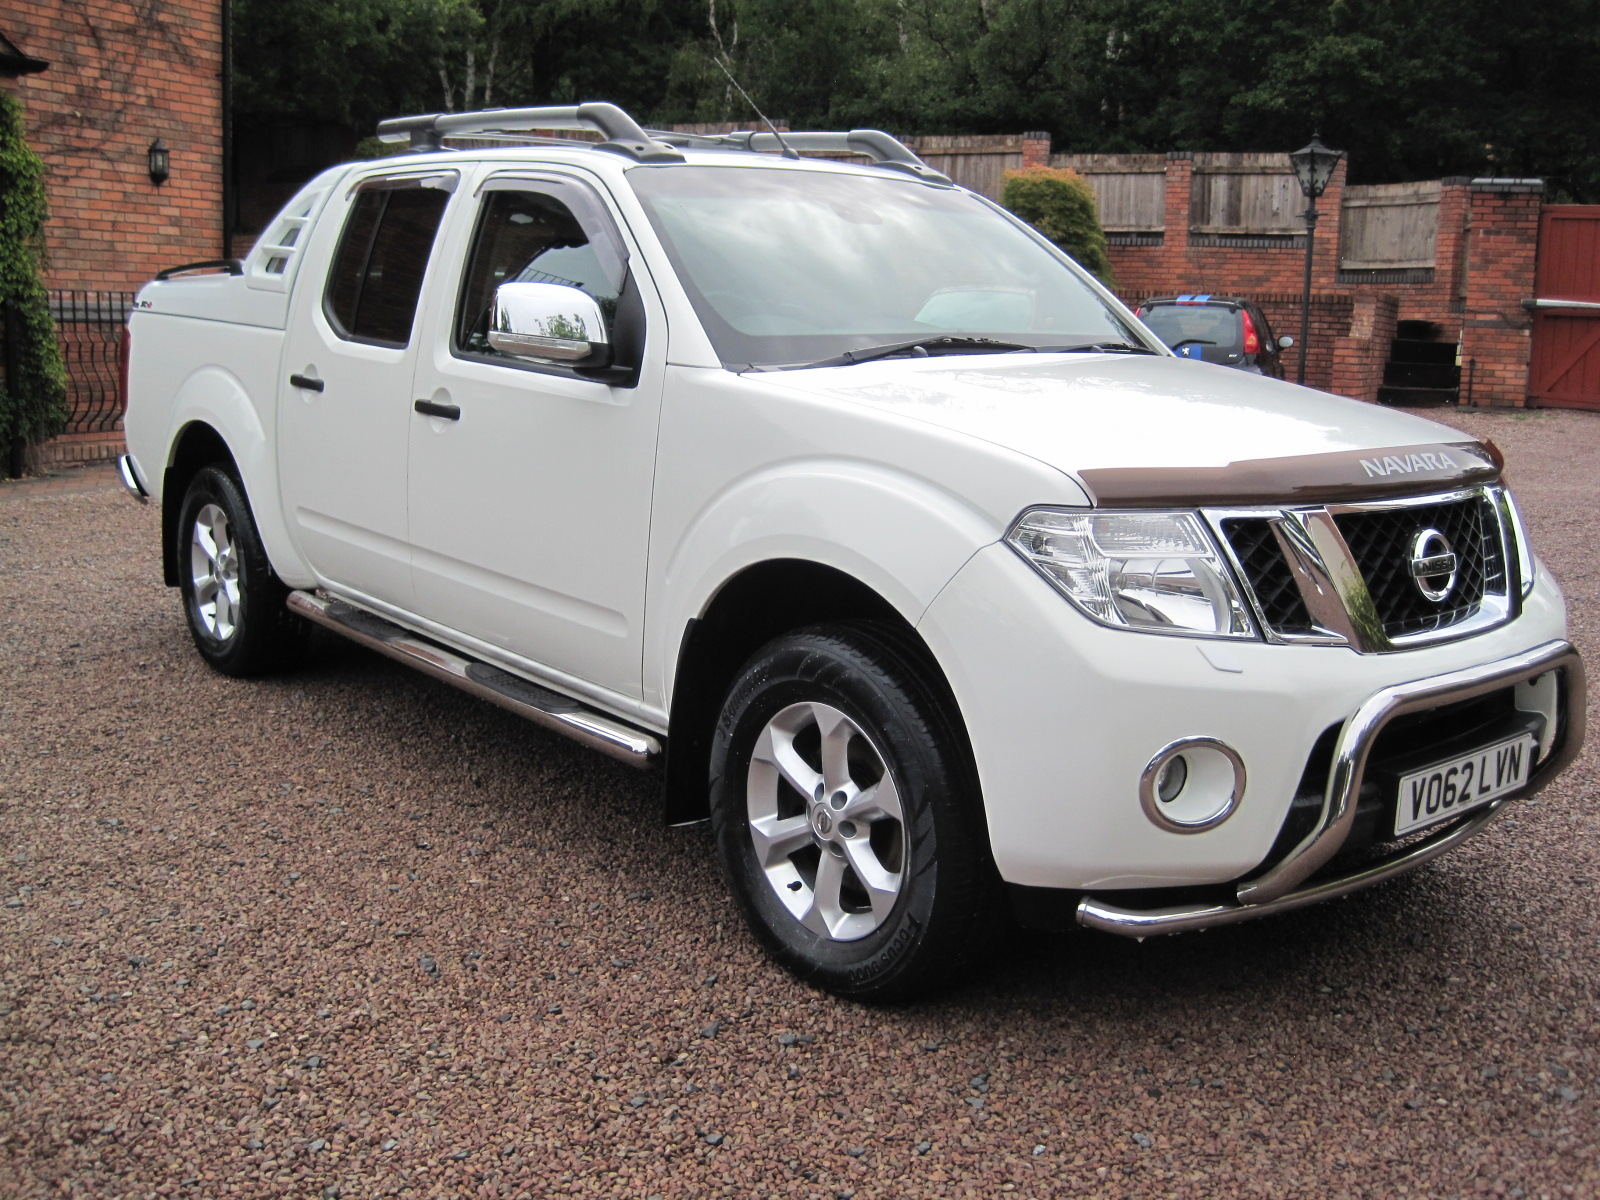 2012 62 Nissan Navara 2.5 dCi Tekna Premium Connect Double Cab ABSOLUTELY PRISTINE! ONLY USED AS A CAR! LOW MILES NO VAT!